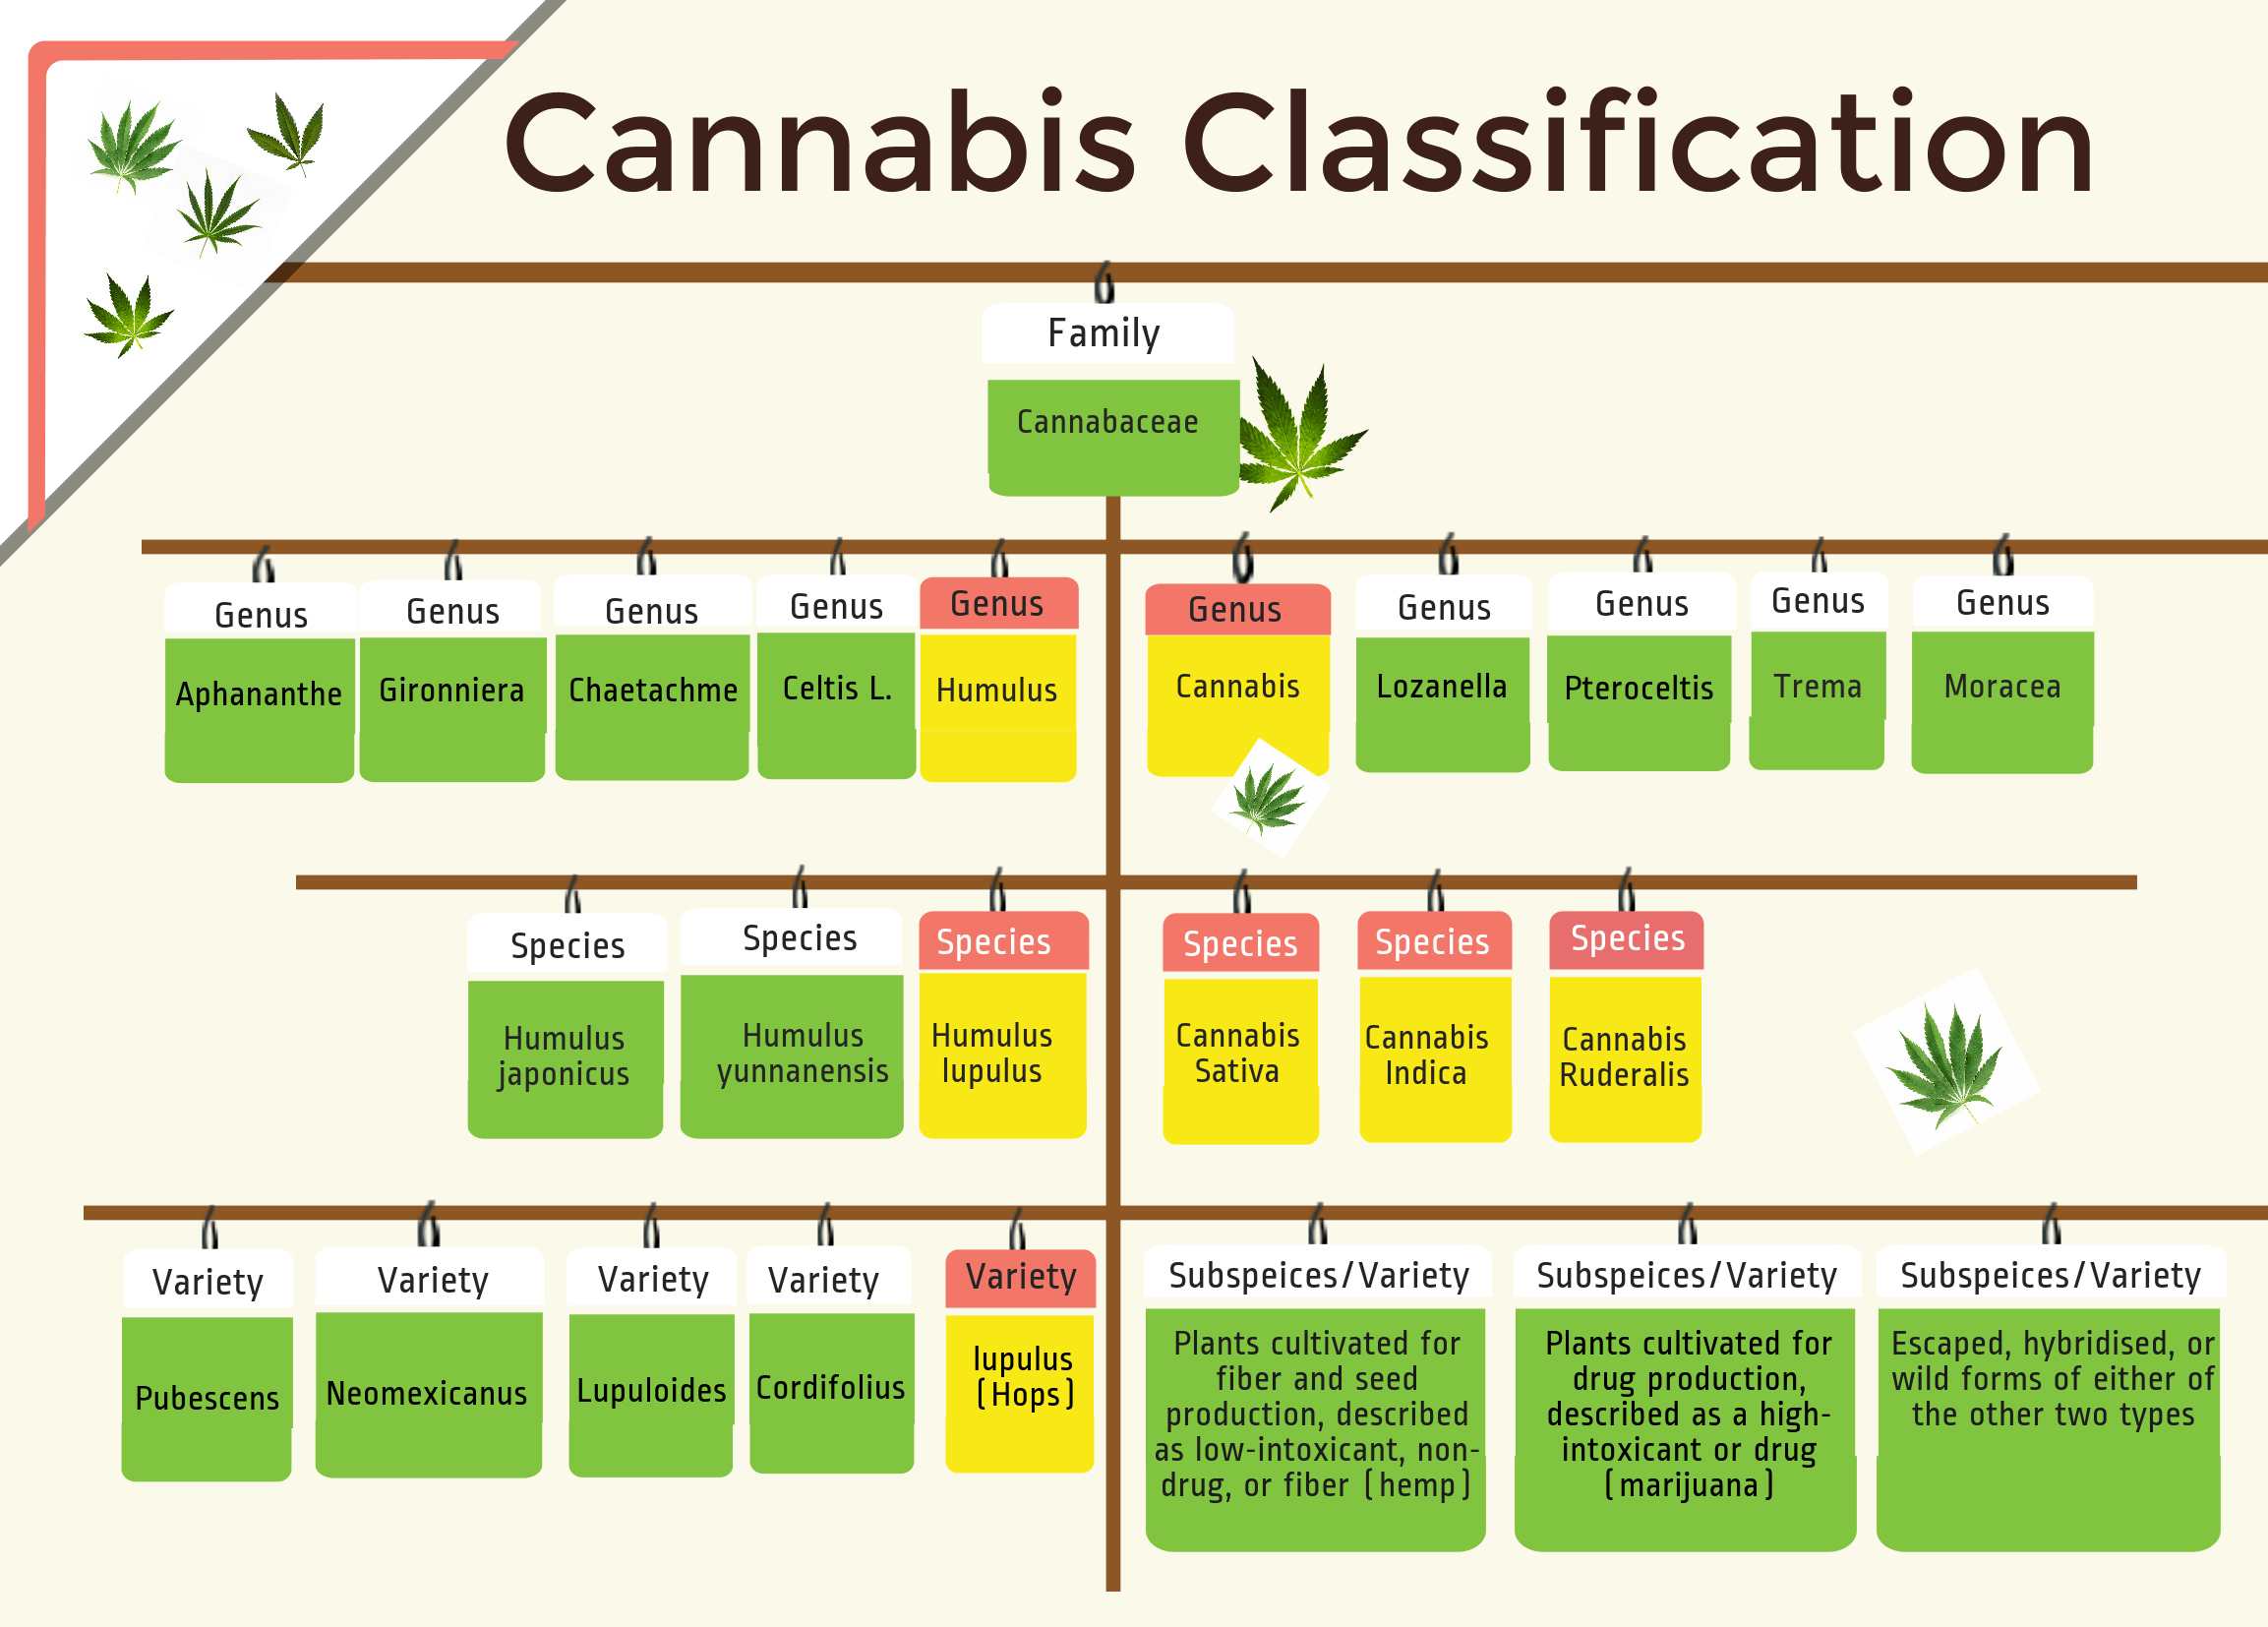 Cannabis taxonomy and geneology tree